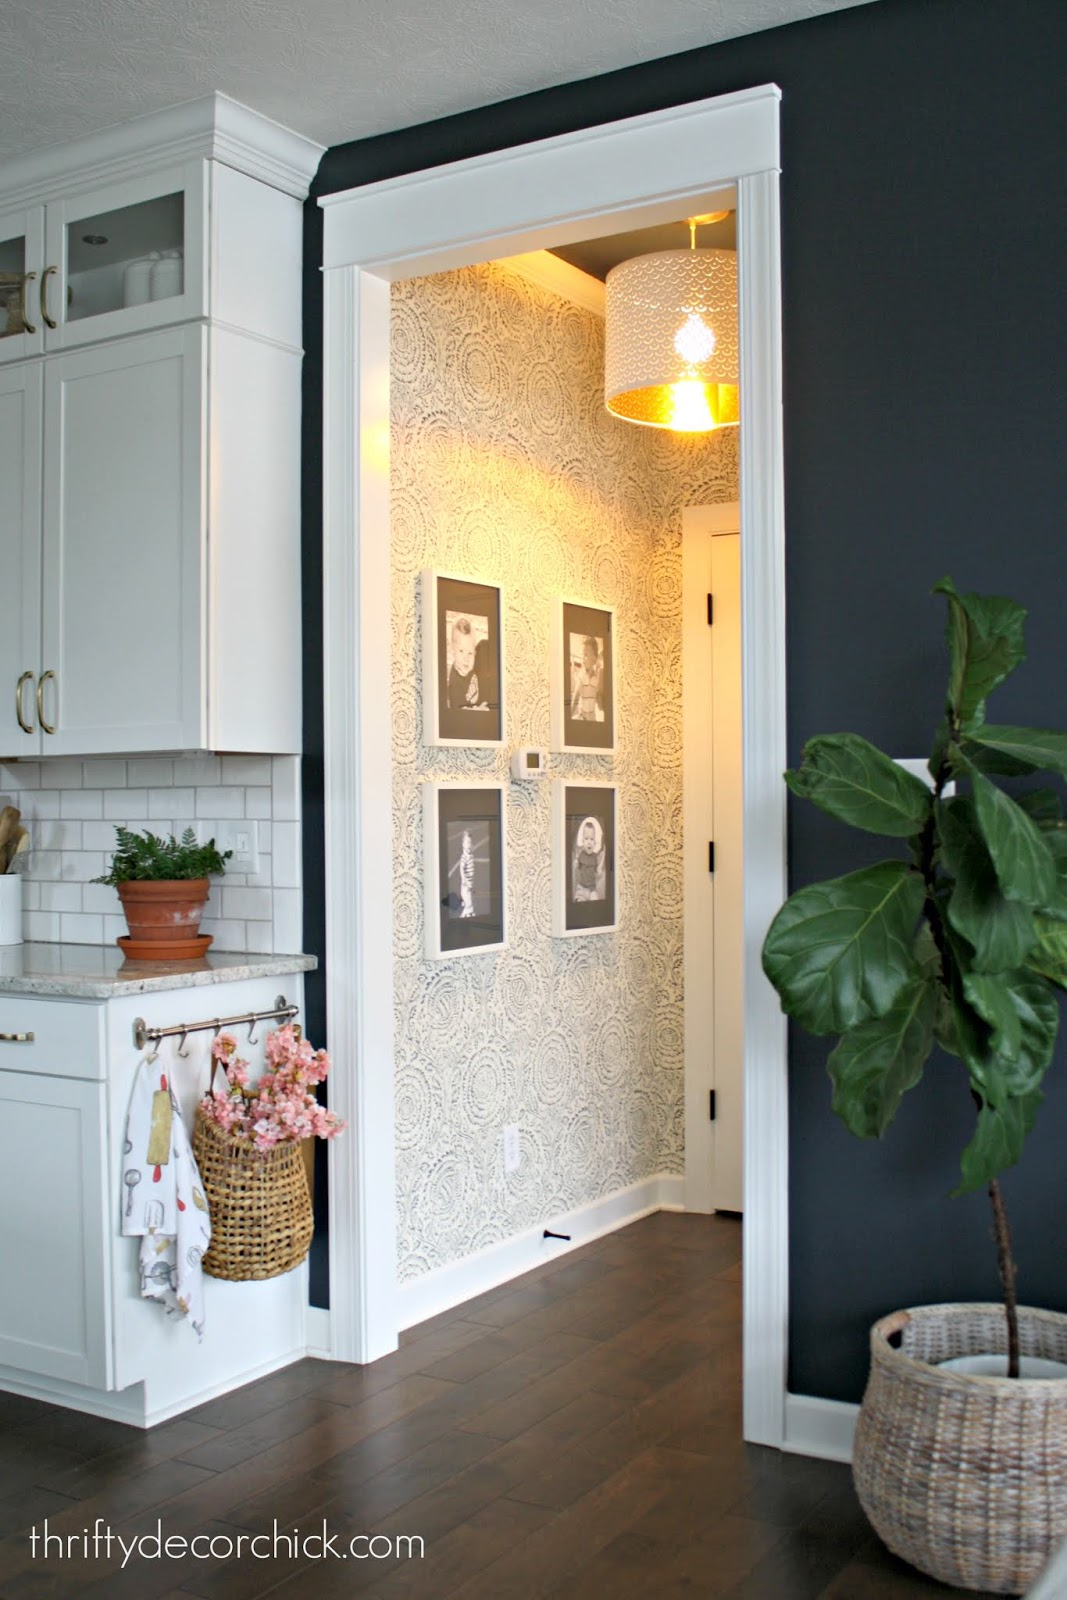 Adding wallpaper to small space